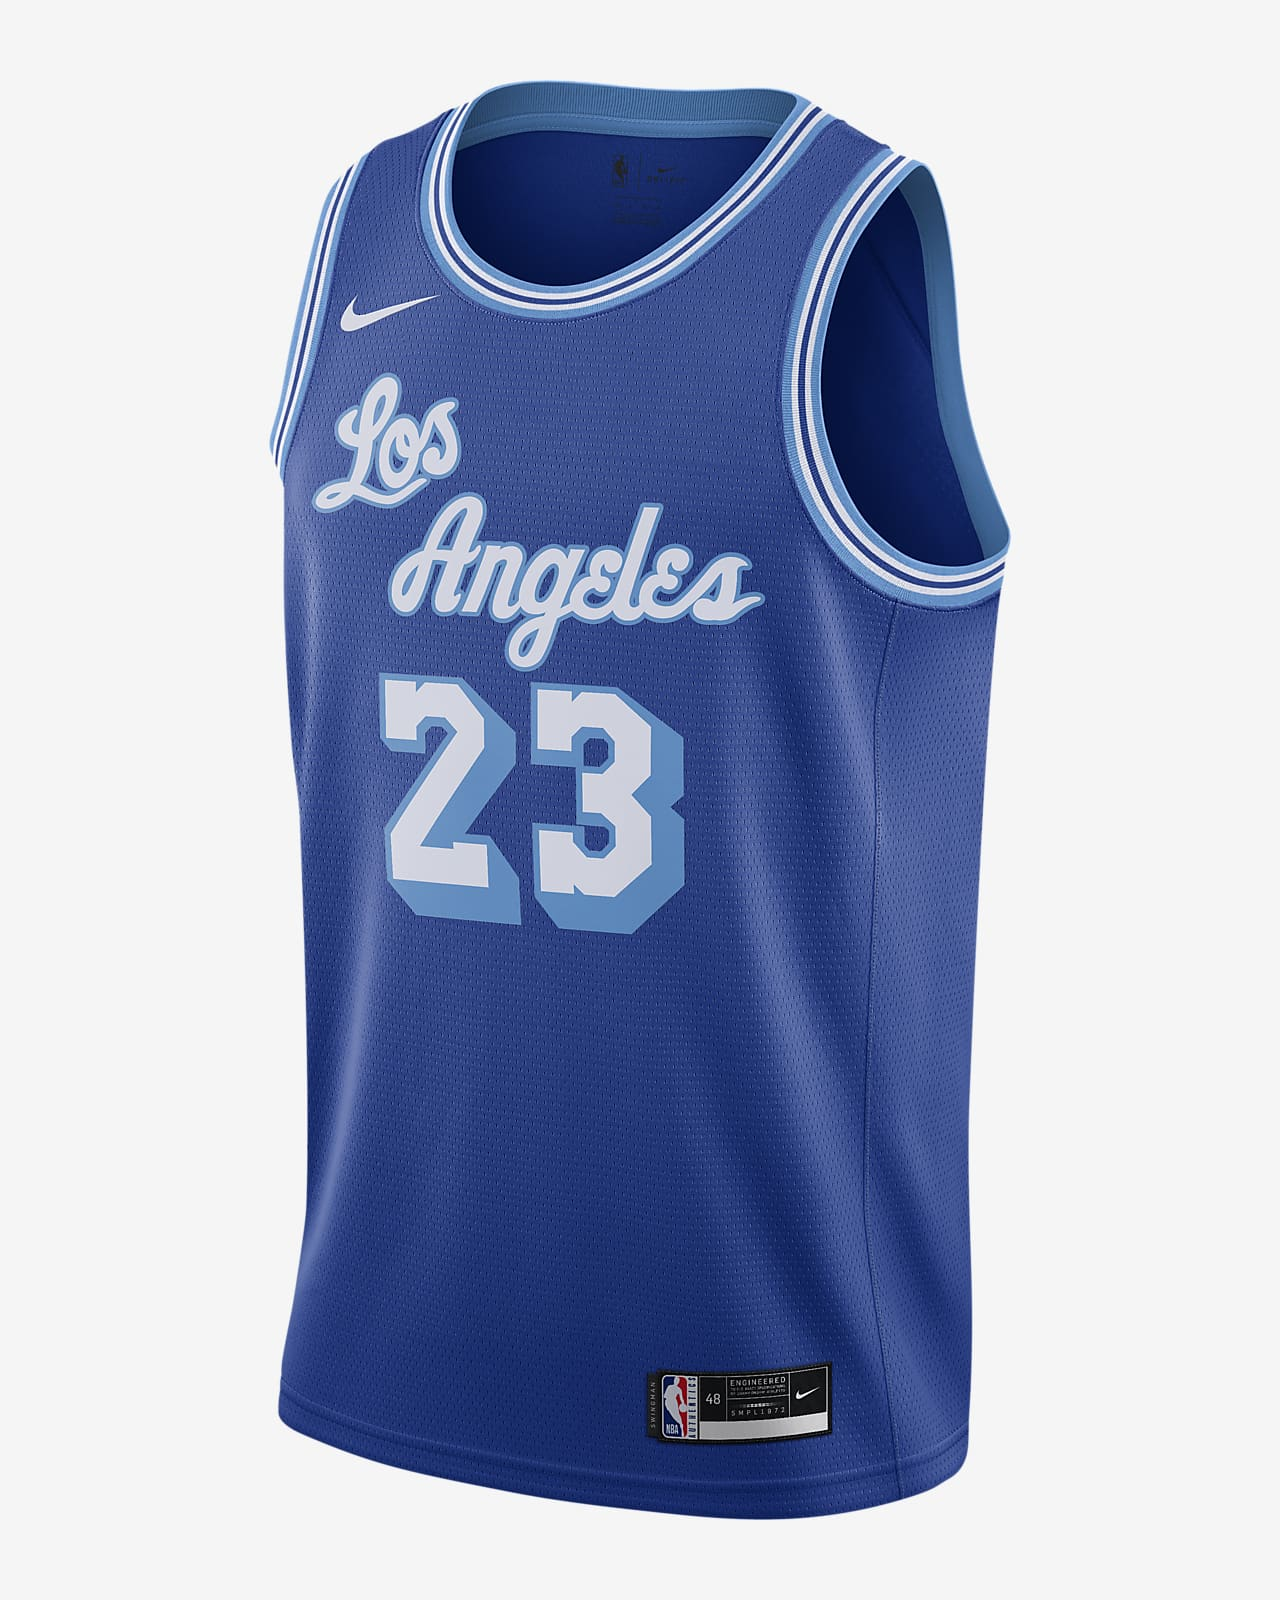 Los Angeles Lakers Classic Edition 2020 Nike NBA Swingman Jersey